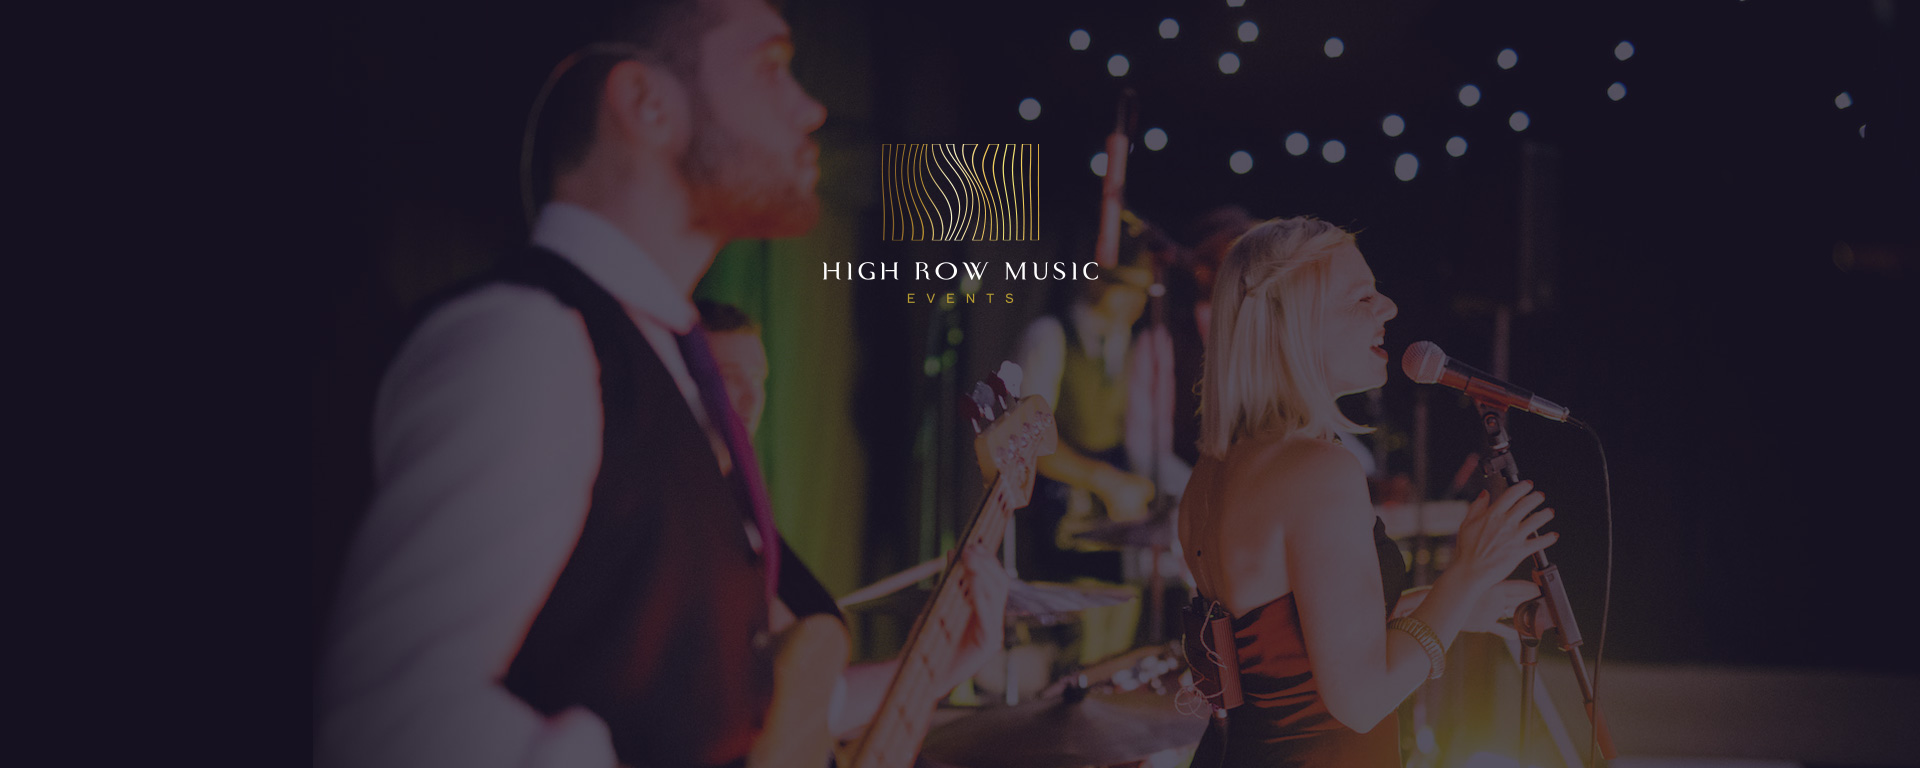 Music Agency - High Row Music Events